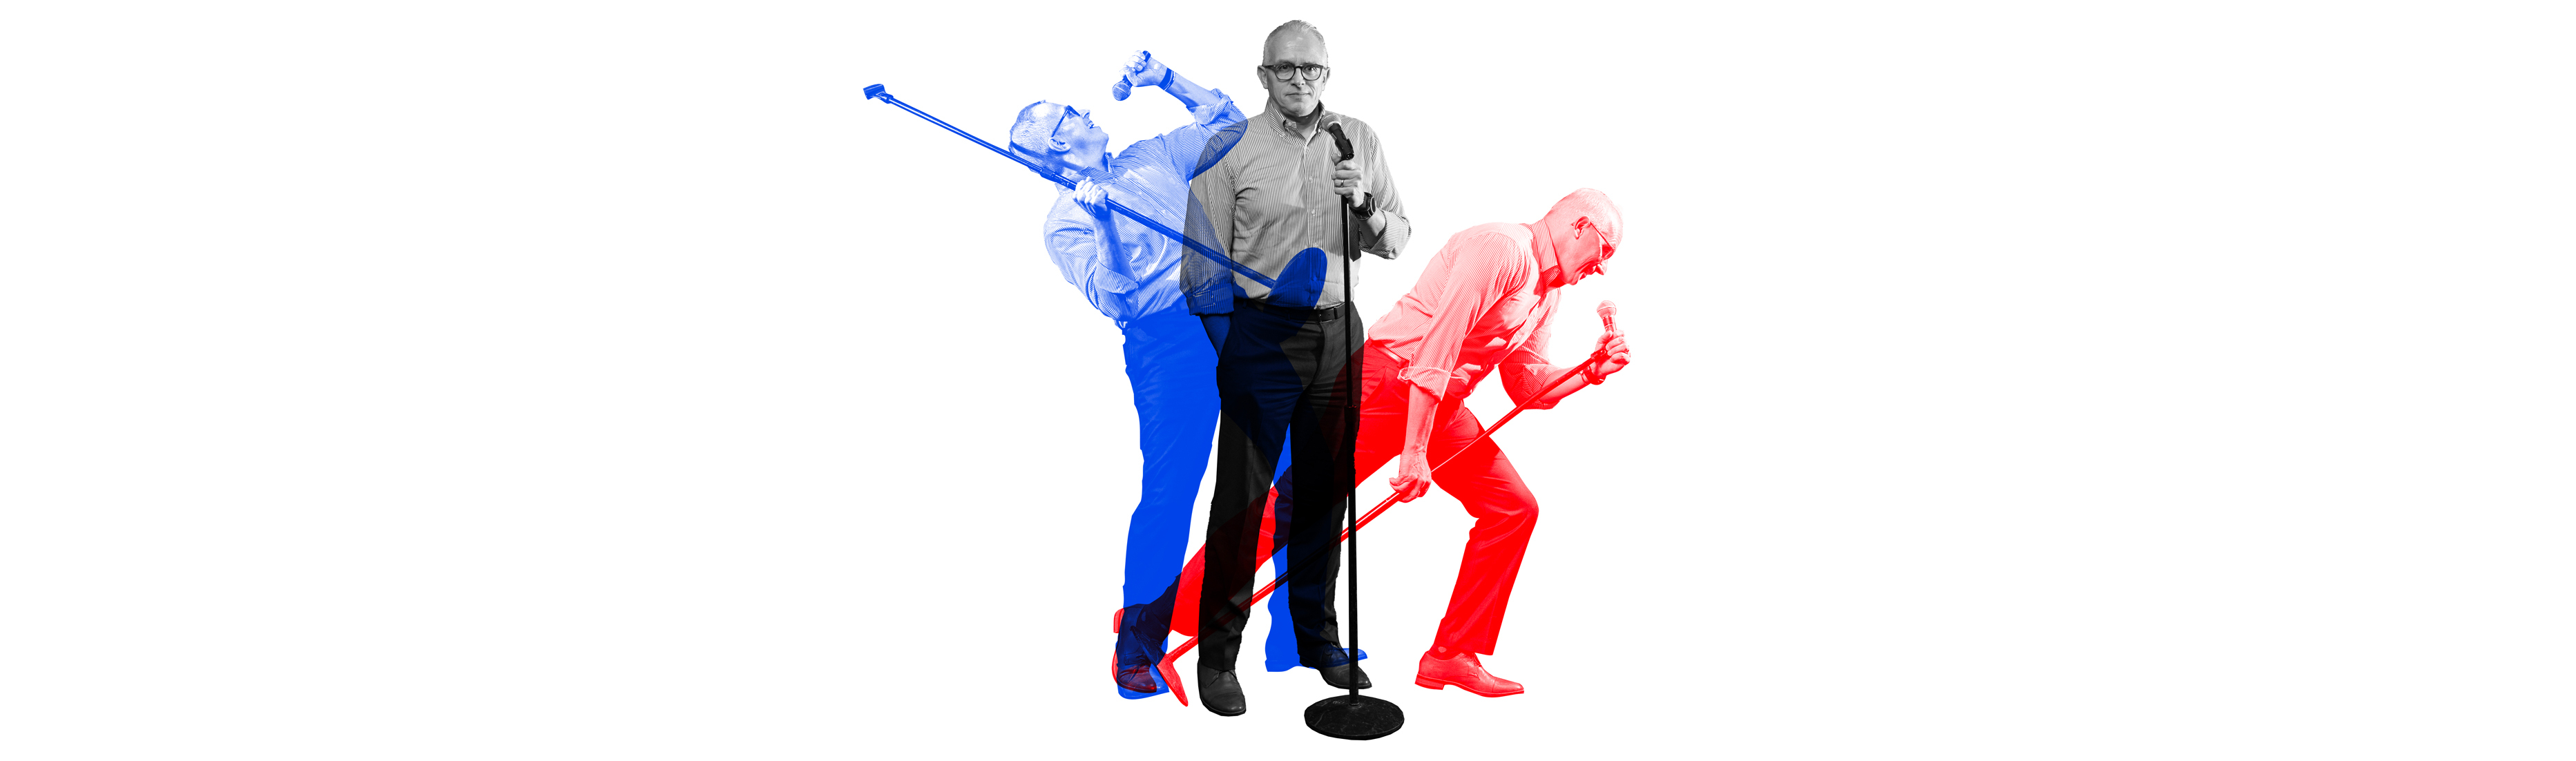 Frank Tavera of The Palace Theater at a microphone stand, overlayed with images of Frank singing